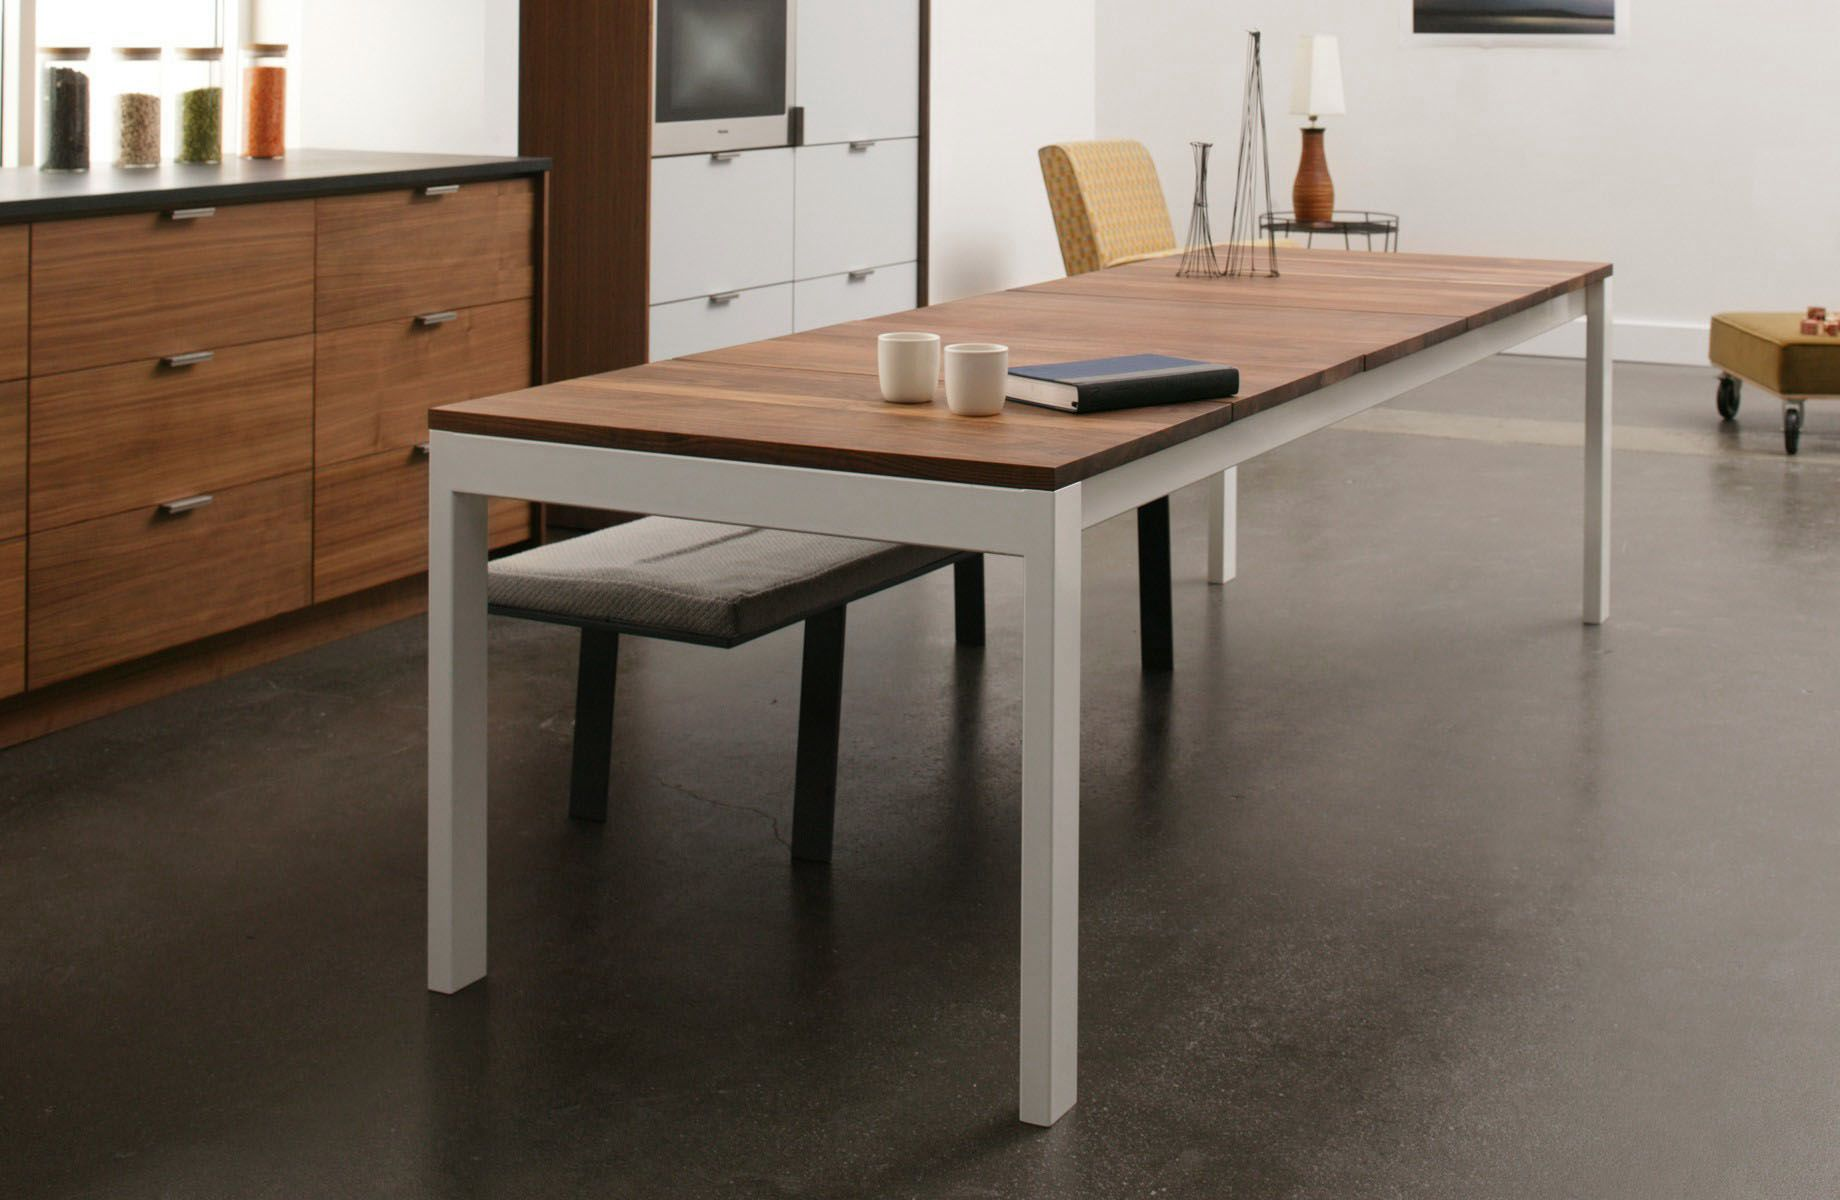 Stahlmöbel design  Steel Table 4 | DESIGN // furniture | Pinterest | Stahl und Tische